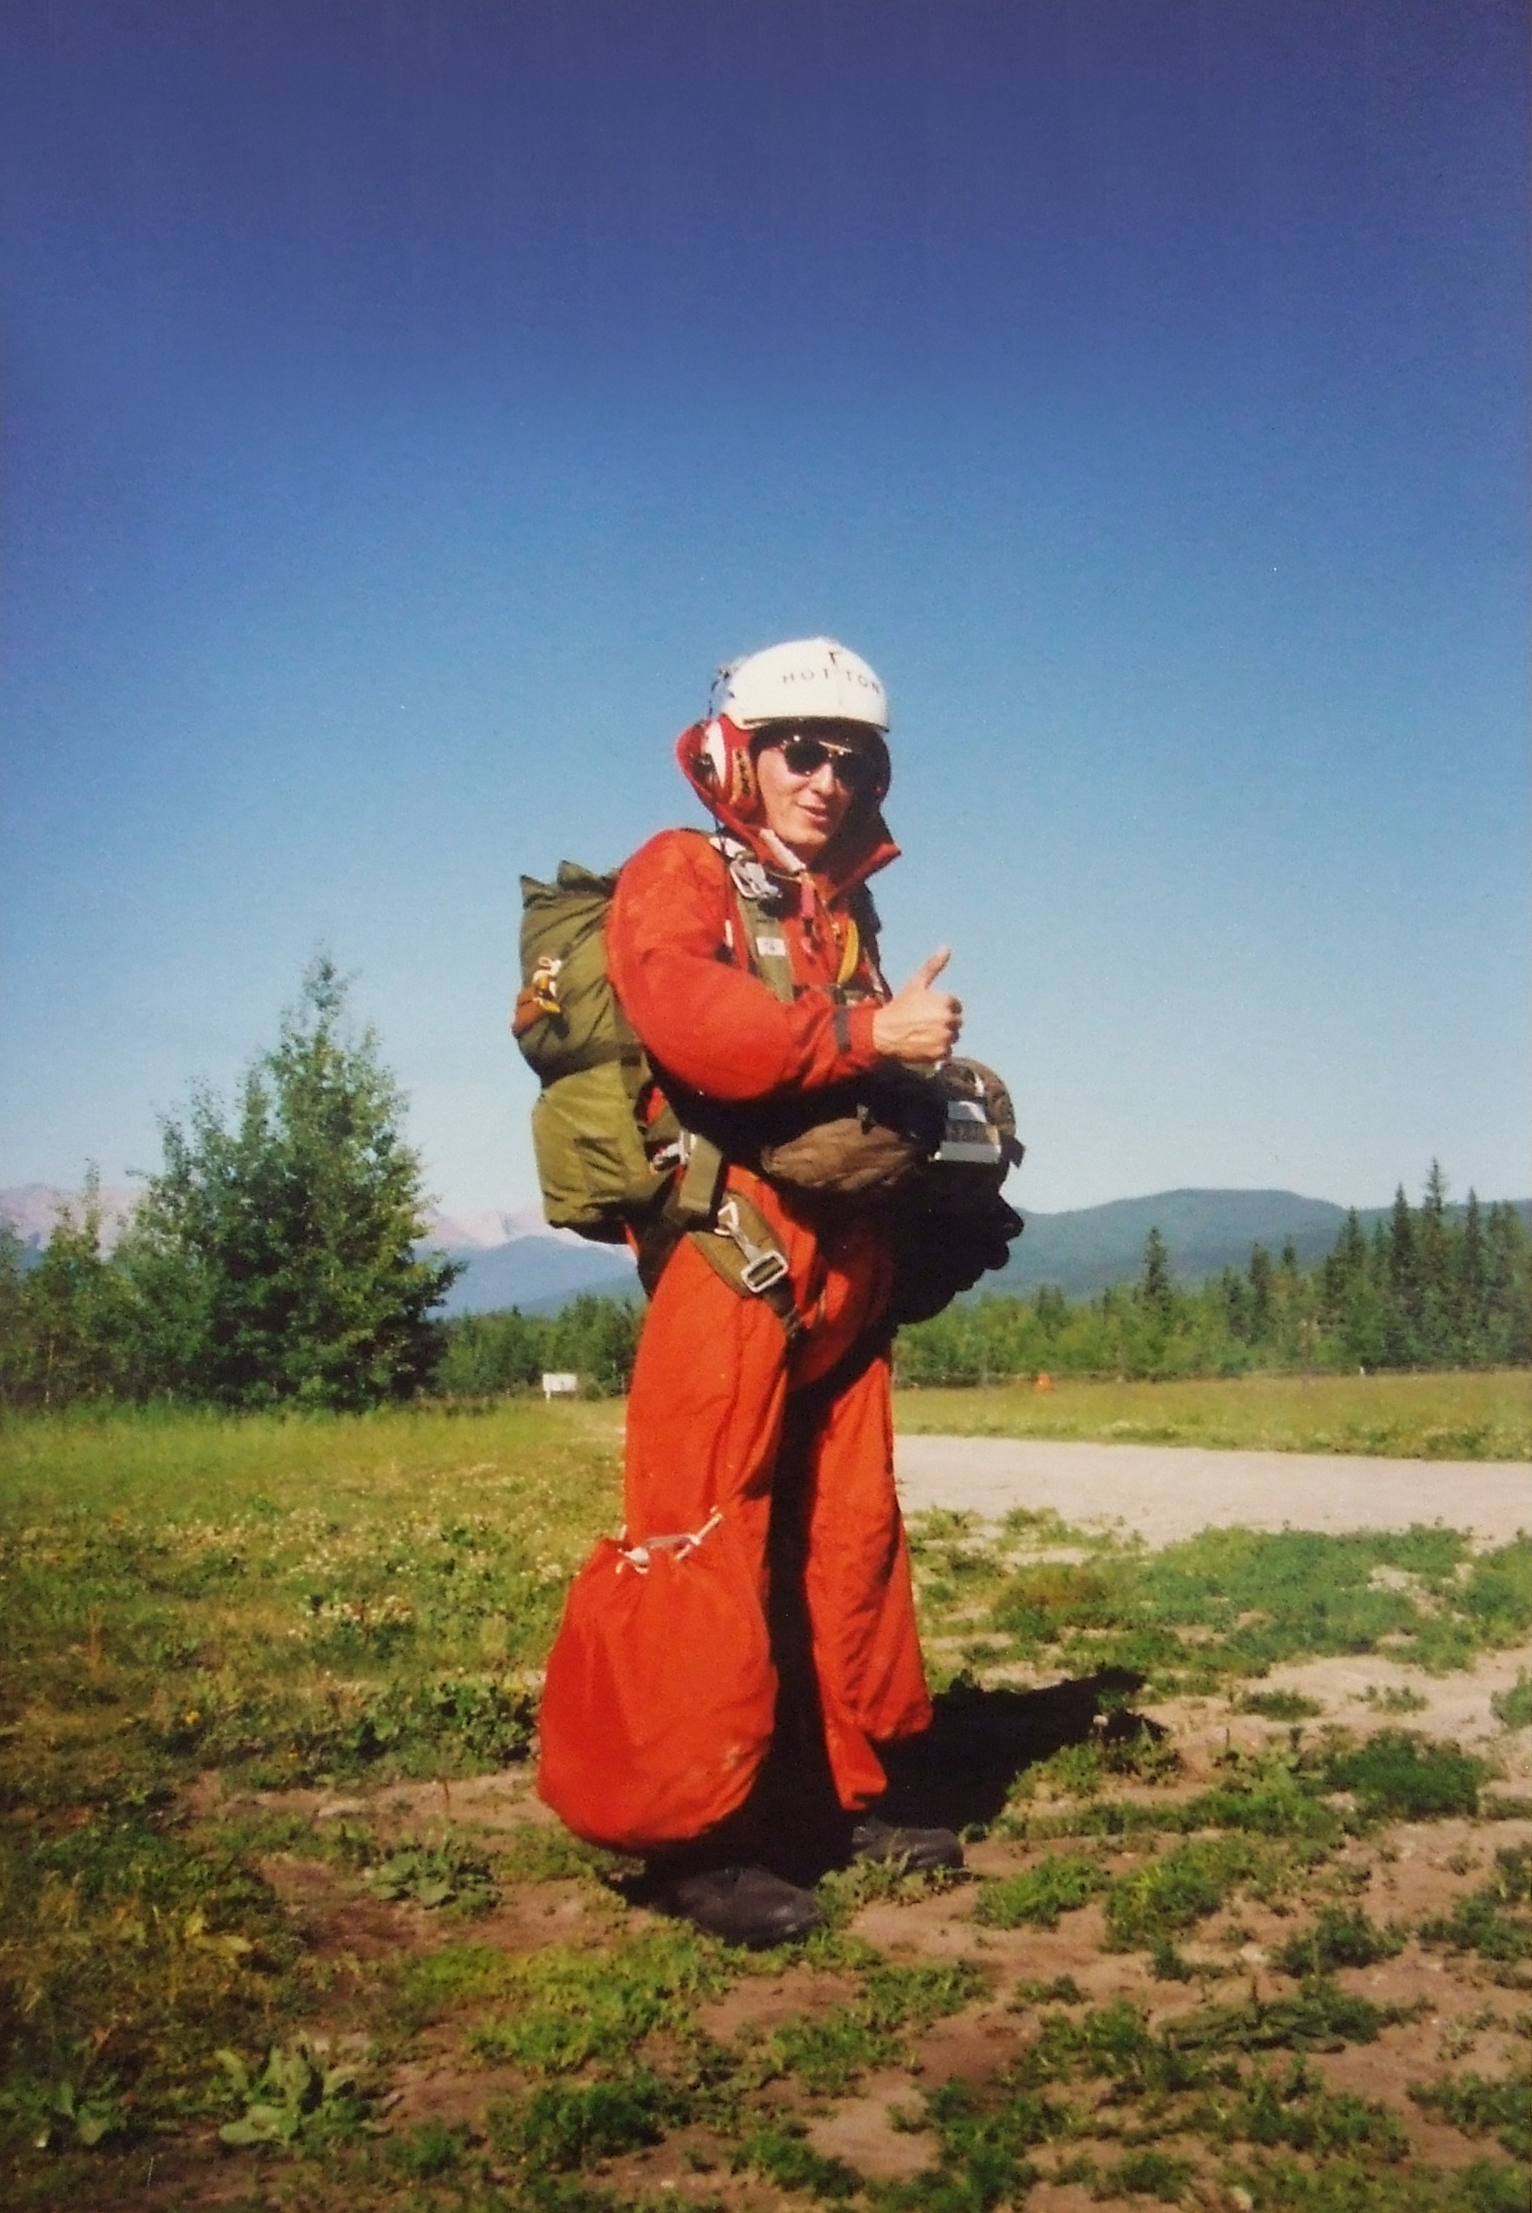 Ready for the final jump in July 1990 for his last search and rescue technician training exam, now-Sergeant André Hotton looks at his puffy-legged jumpsuit and grimaces: catching that material on a parachute cord on his first exercise jump, once posted to Edmonton, broke his leg mid-air. PHOTO: Submitted